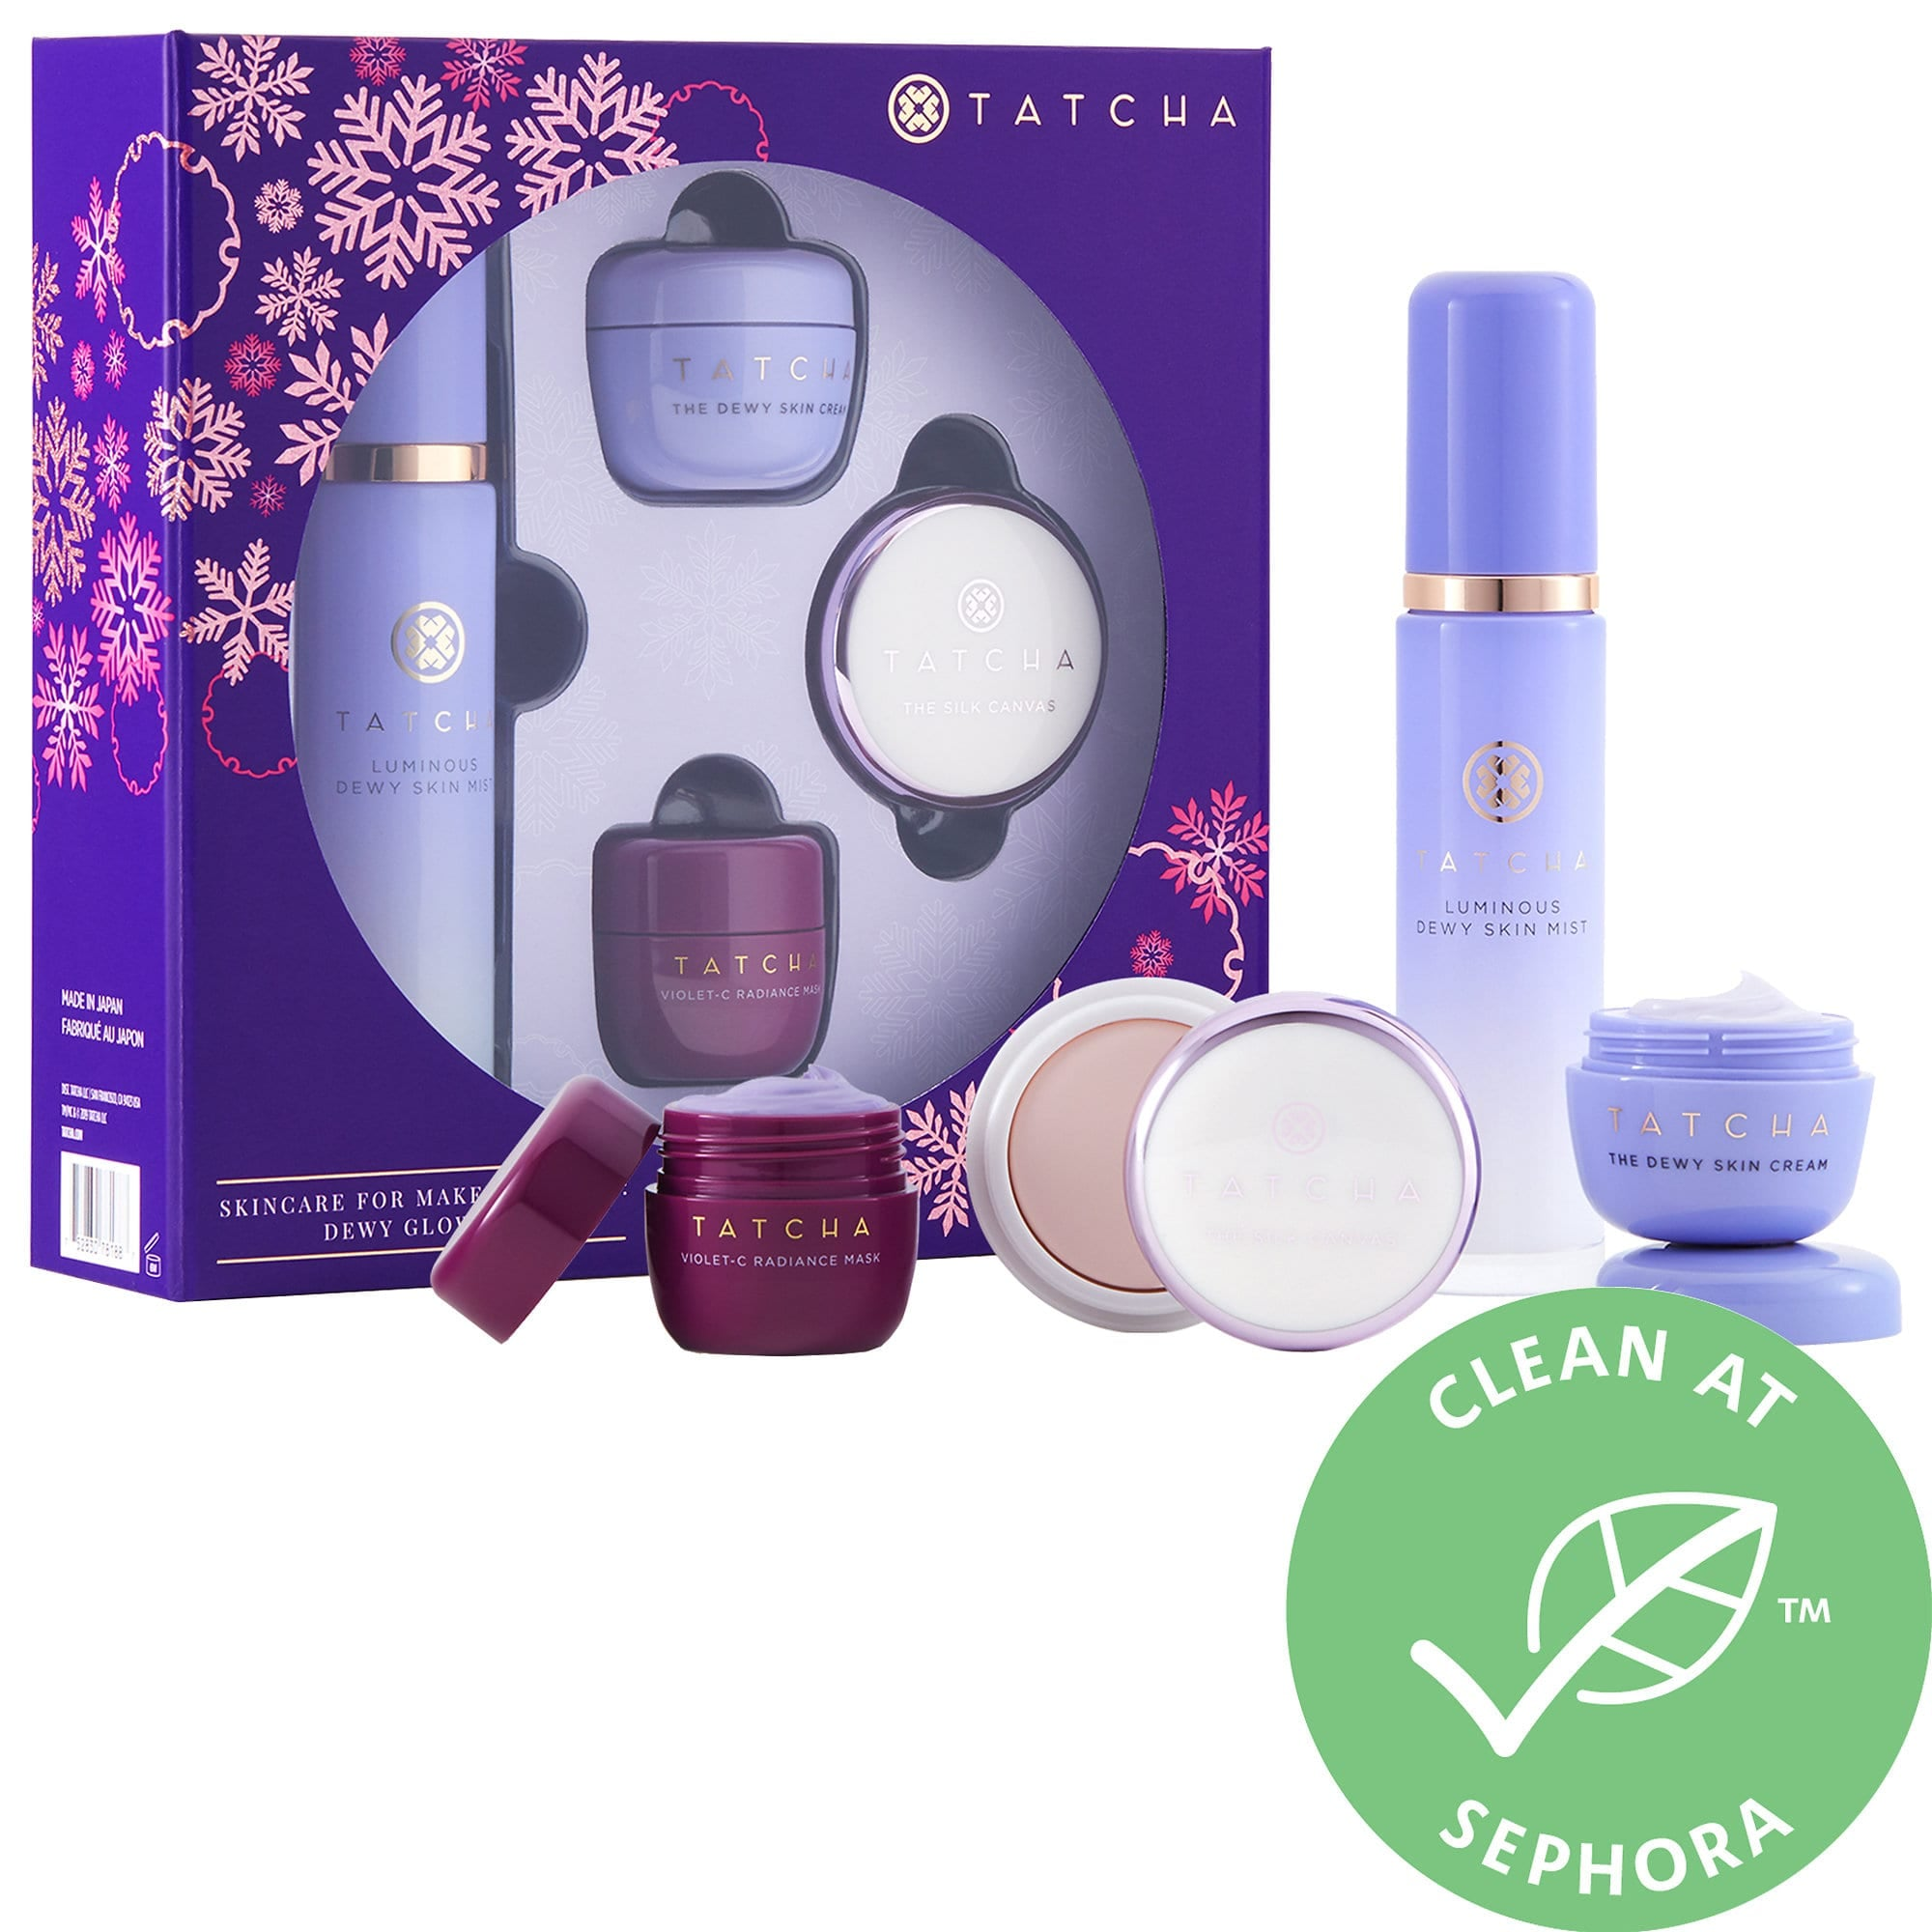 Tatcha Skincare For Makeup Lovers Dewy Glow Set Best Skincare Gift Sets To Buy In 2019 Popsugar Beauty Australia Photo 16